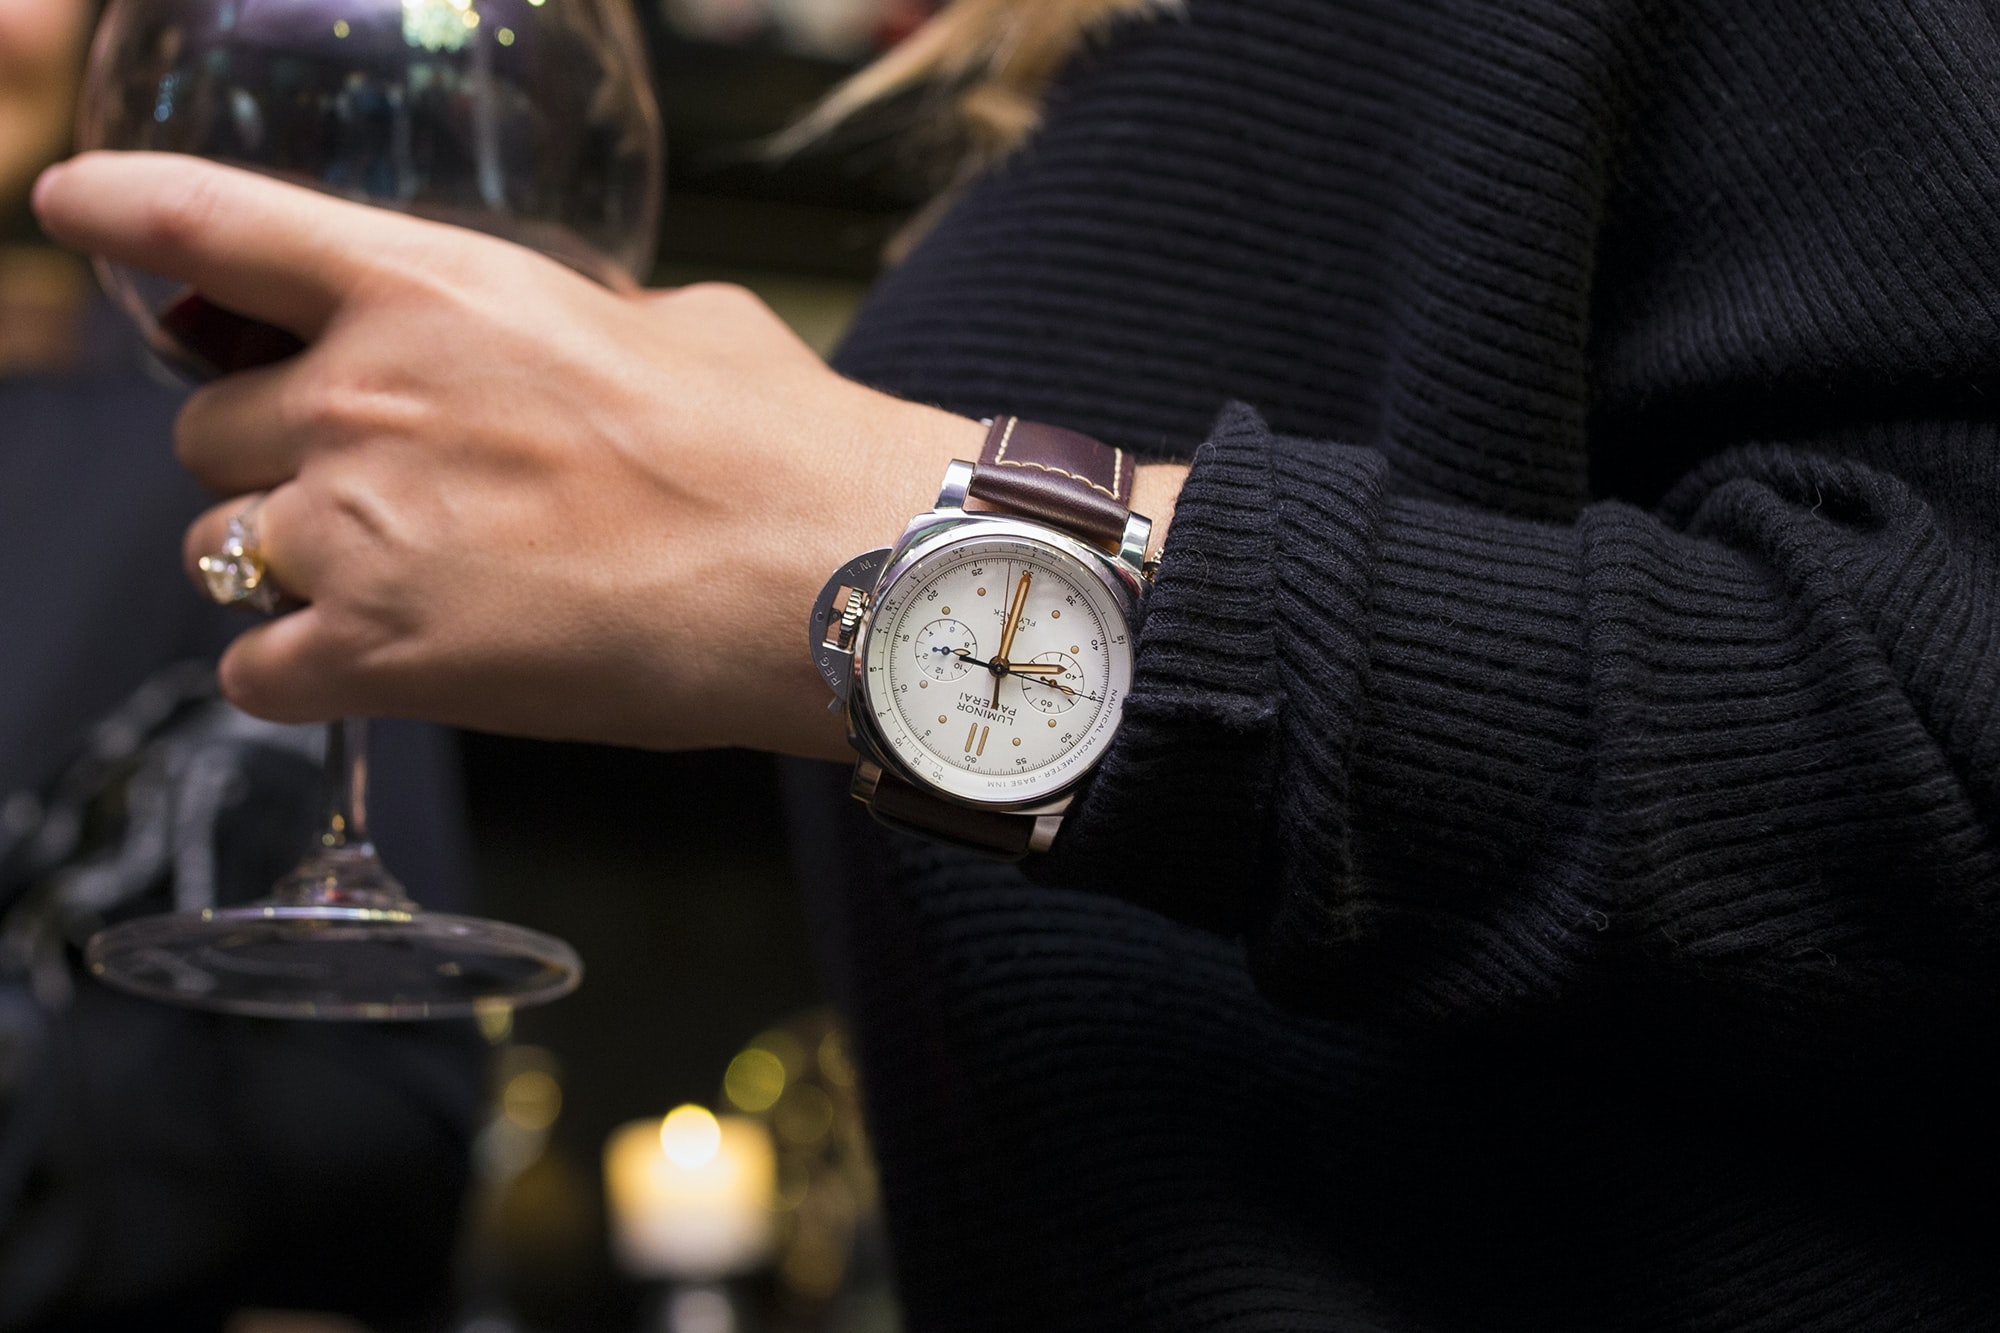 Photo Report: Celebrating The Panerai Luminor Due Collection In New York Photo Report: Celebrating The Panerai Luminor Due Collection In New York  B89A7488 copy